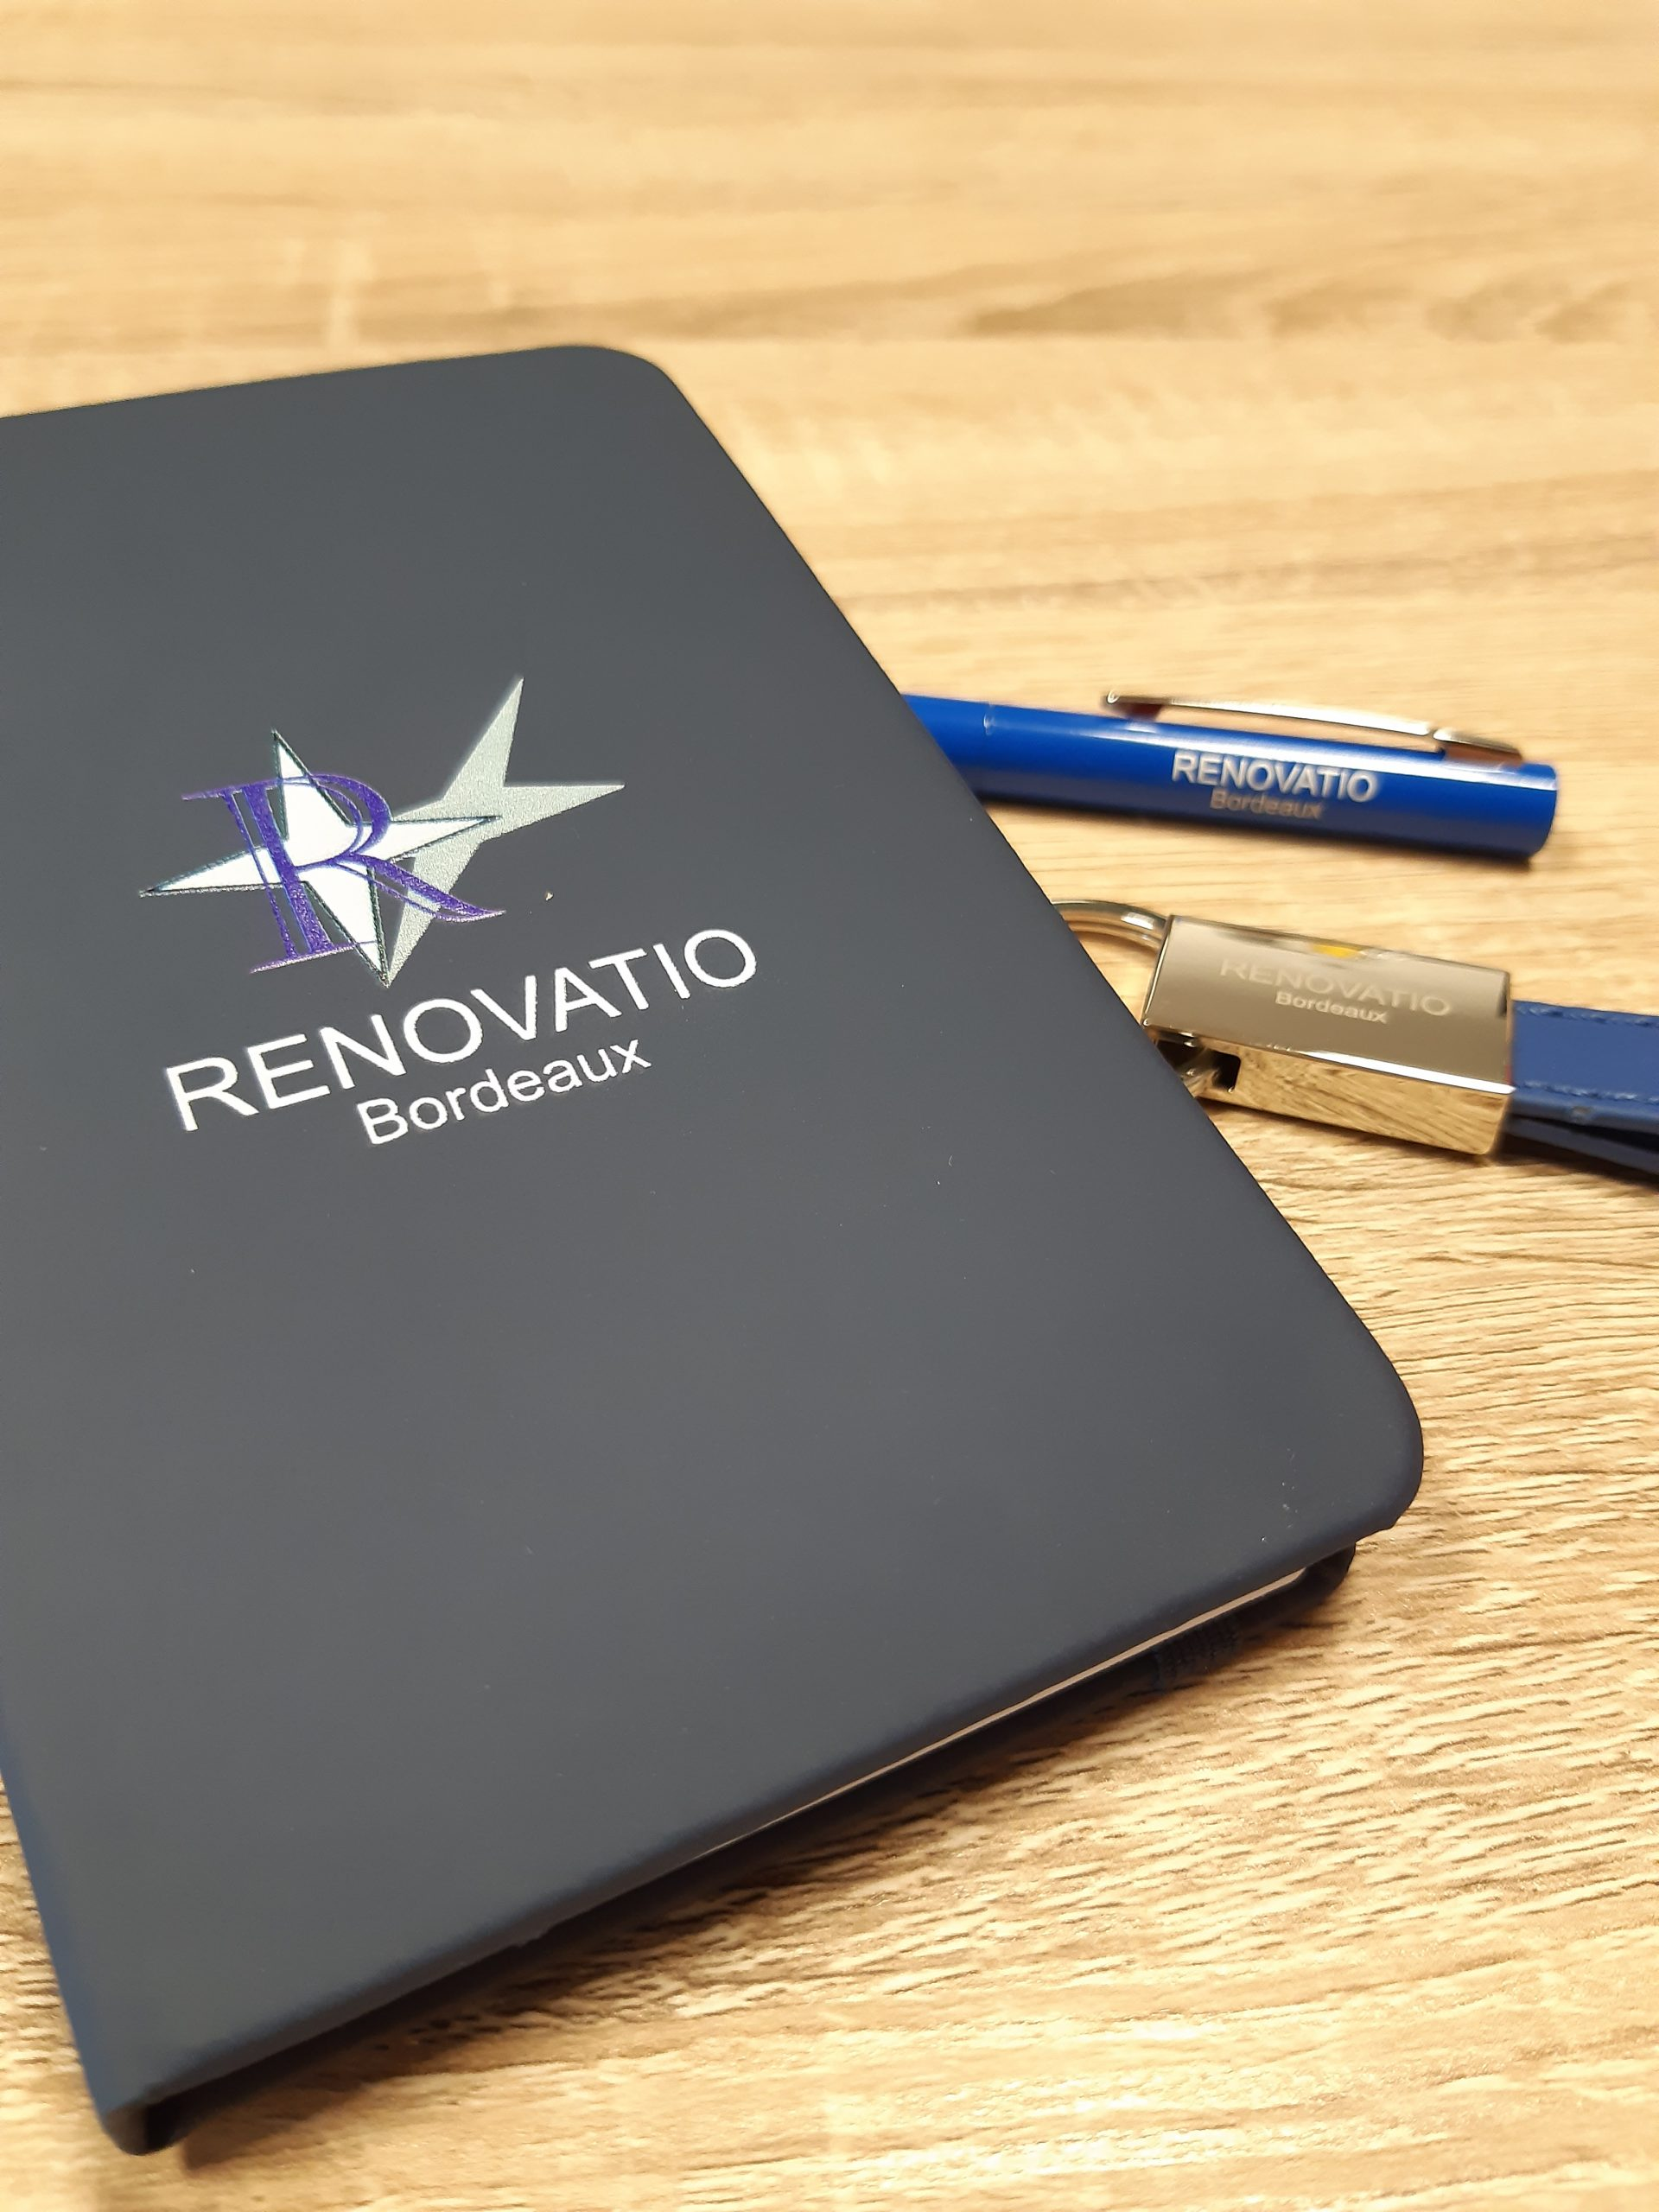 renovatio-bordeaux-goodies-pmd